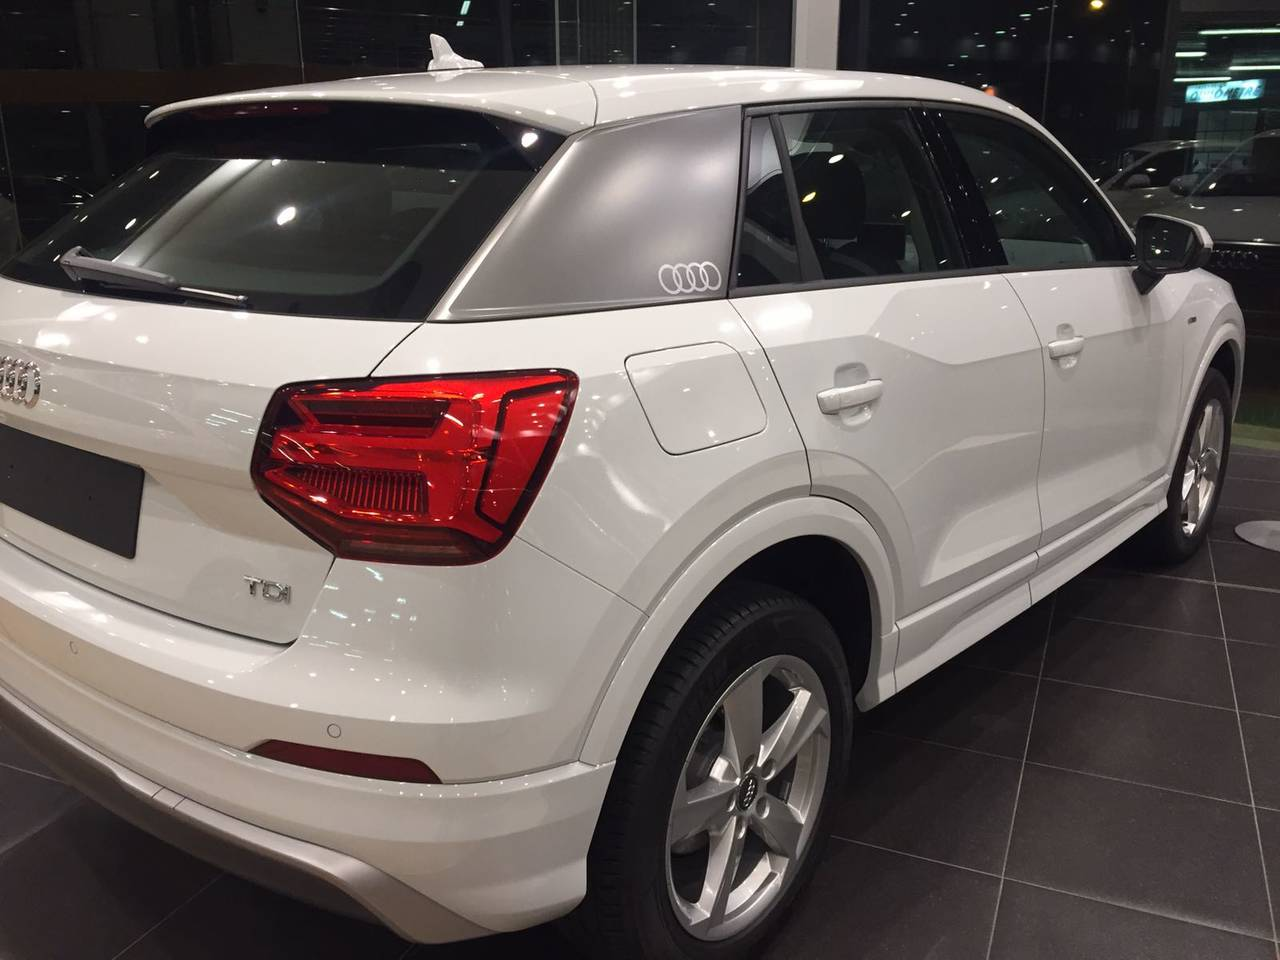 AUDI Q2 LAUNCH EDITION 1.6 TDI 116 CV  4 X 2